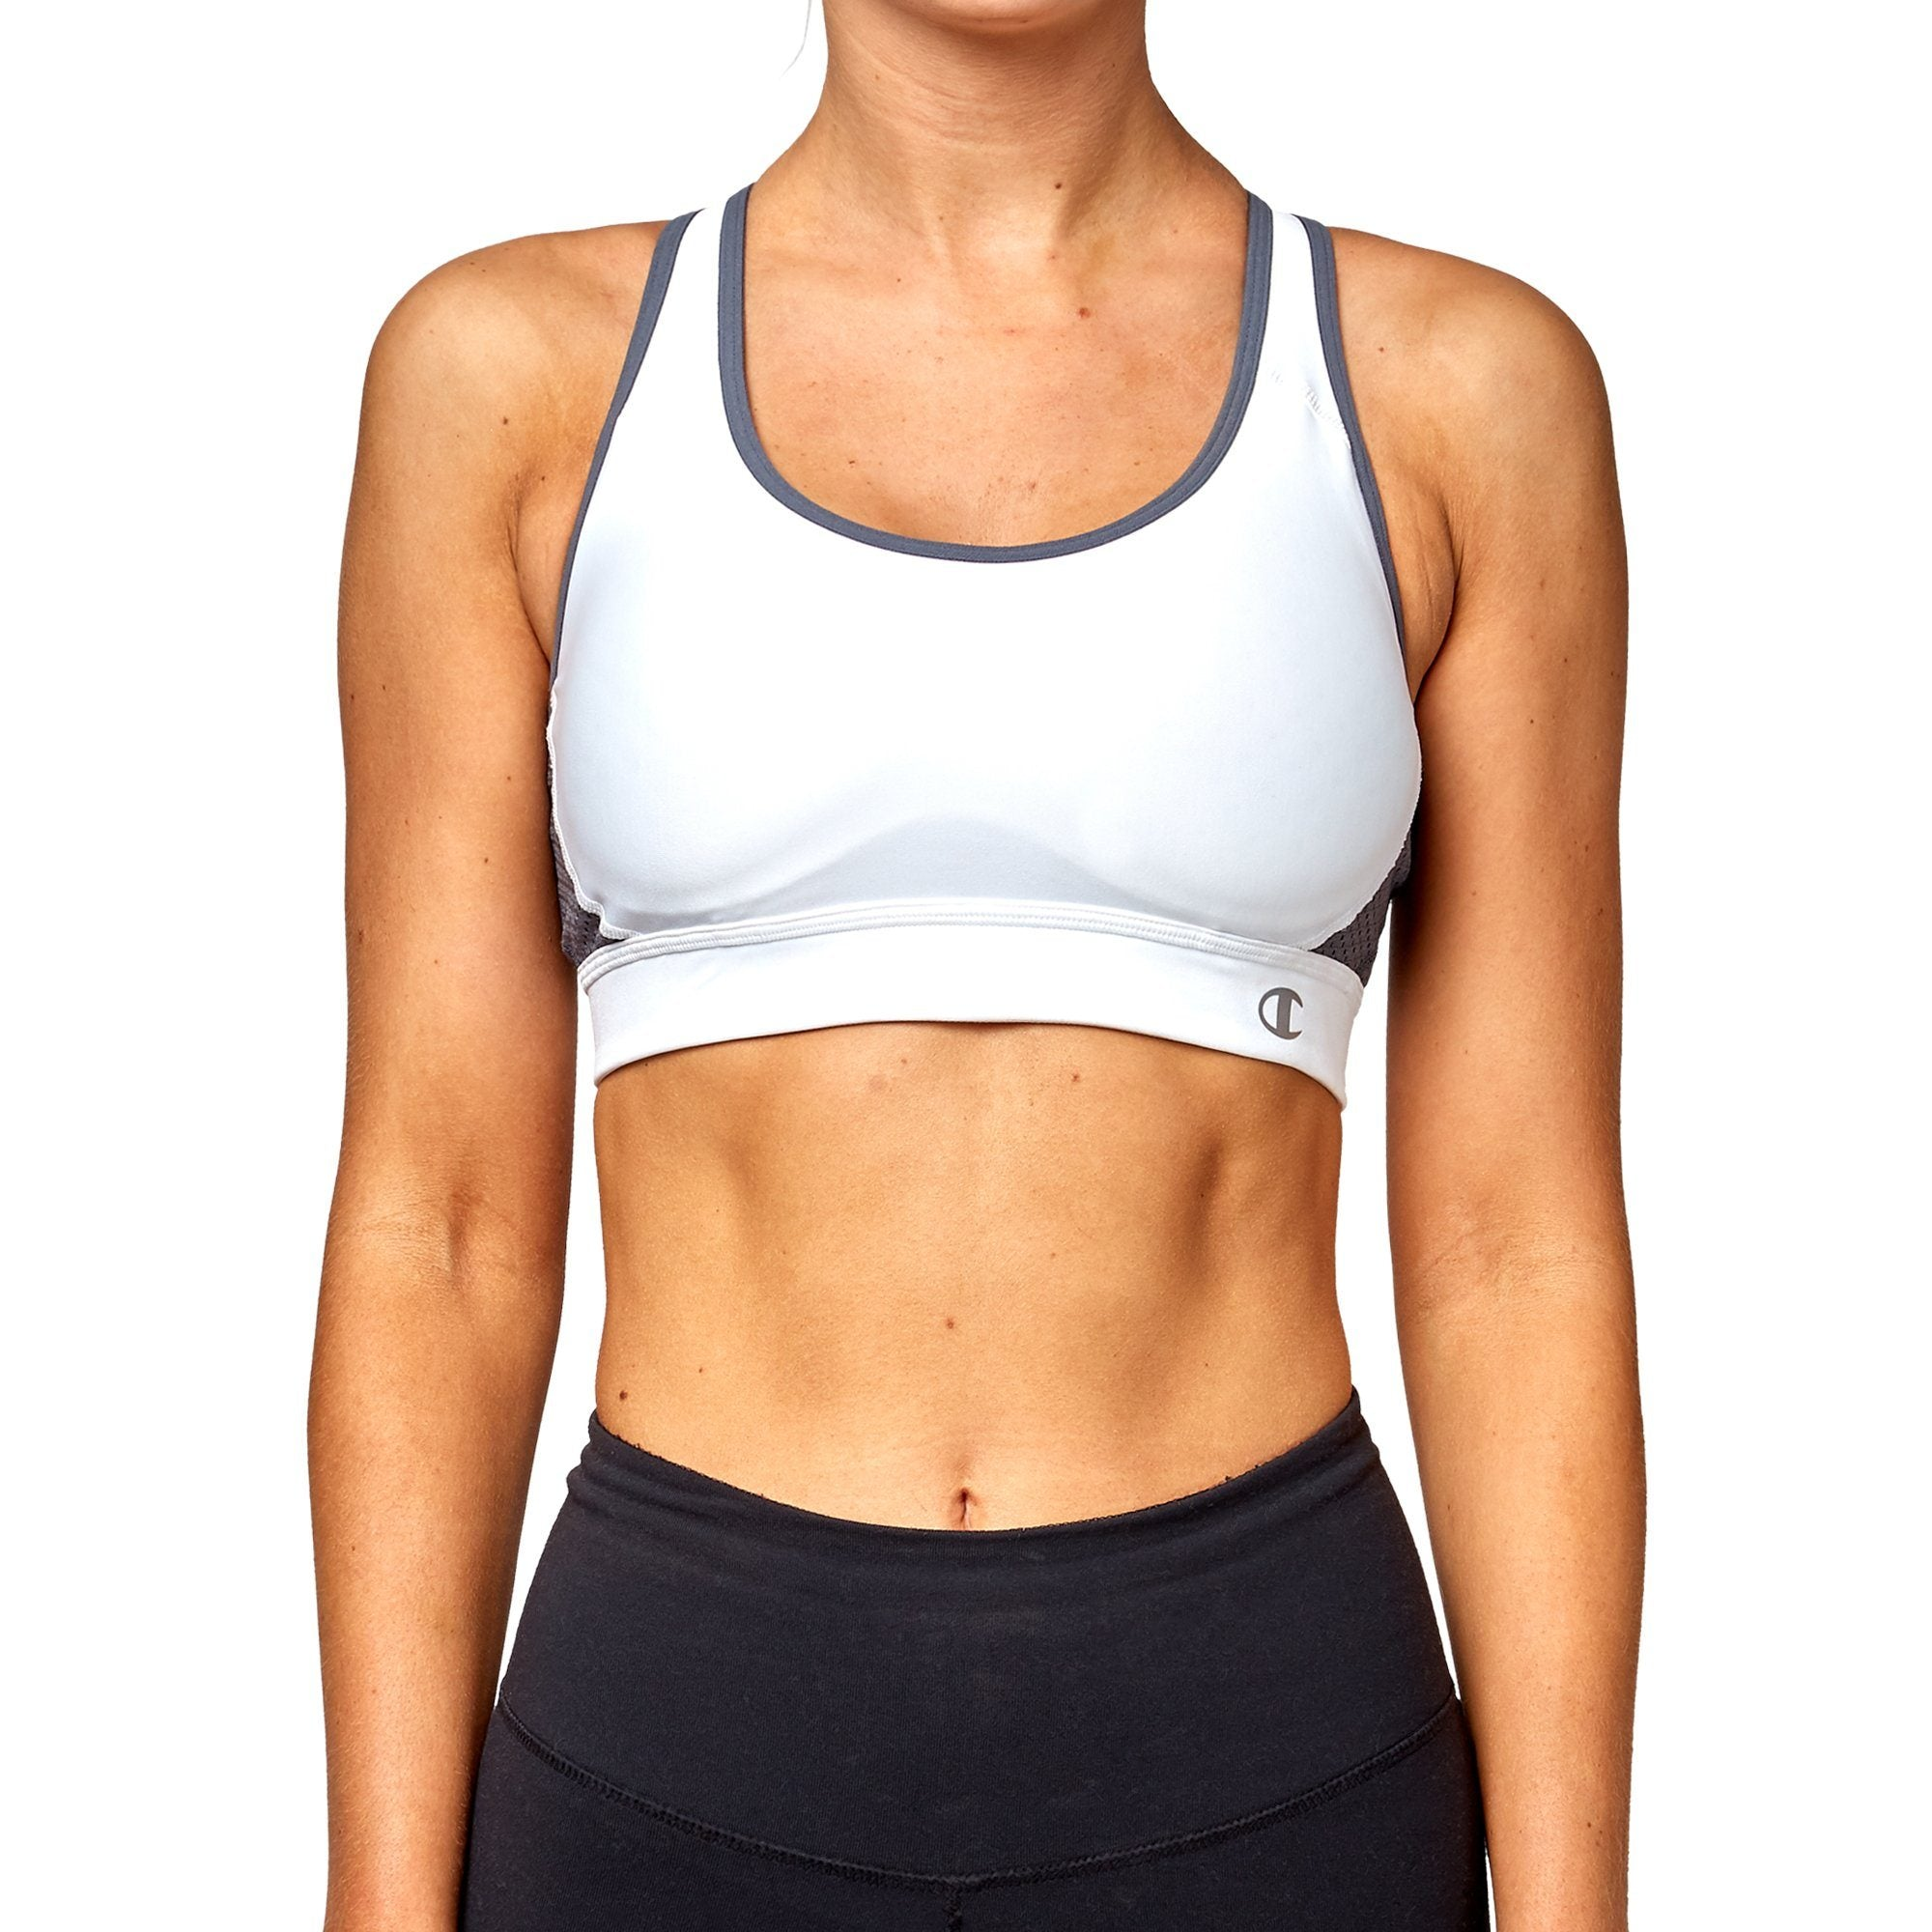 Champion The Great Divide Sports Bra - White/Medium Grey Apparel Champion